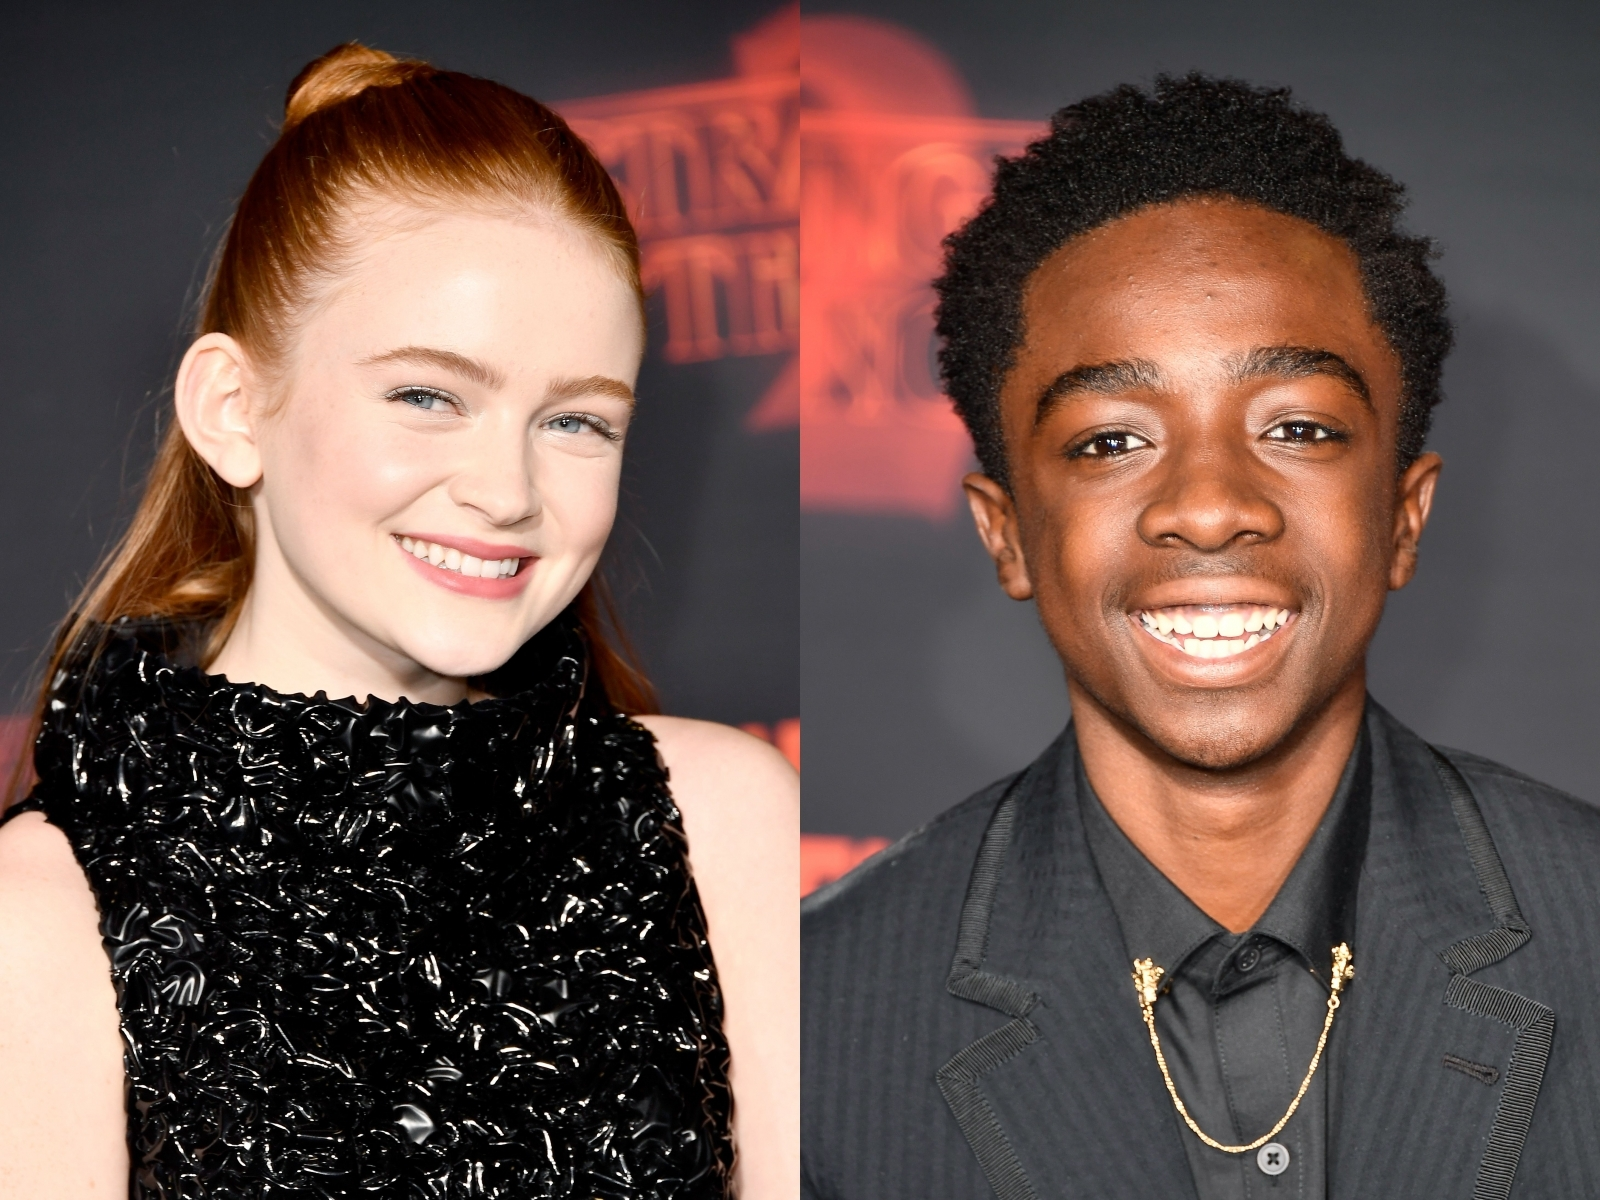 Sadie Sink and Caleb McLaughlin